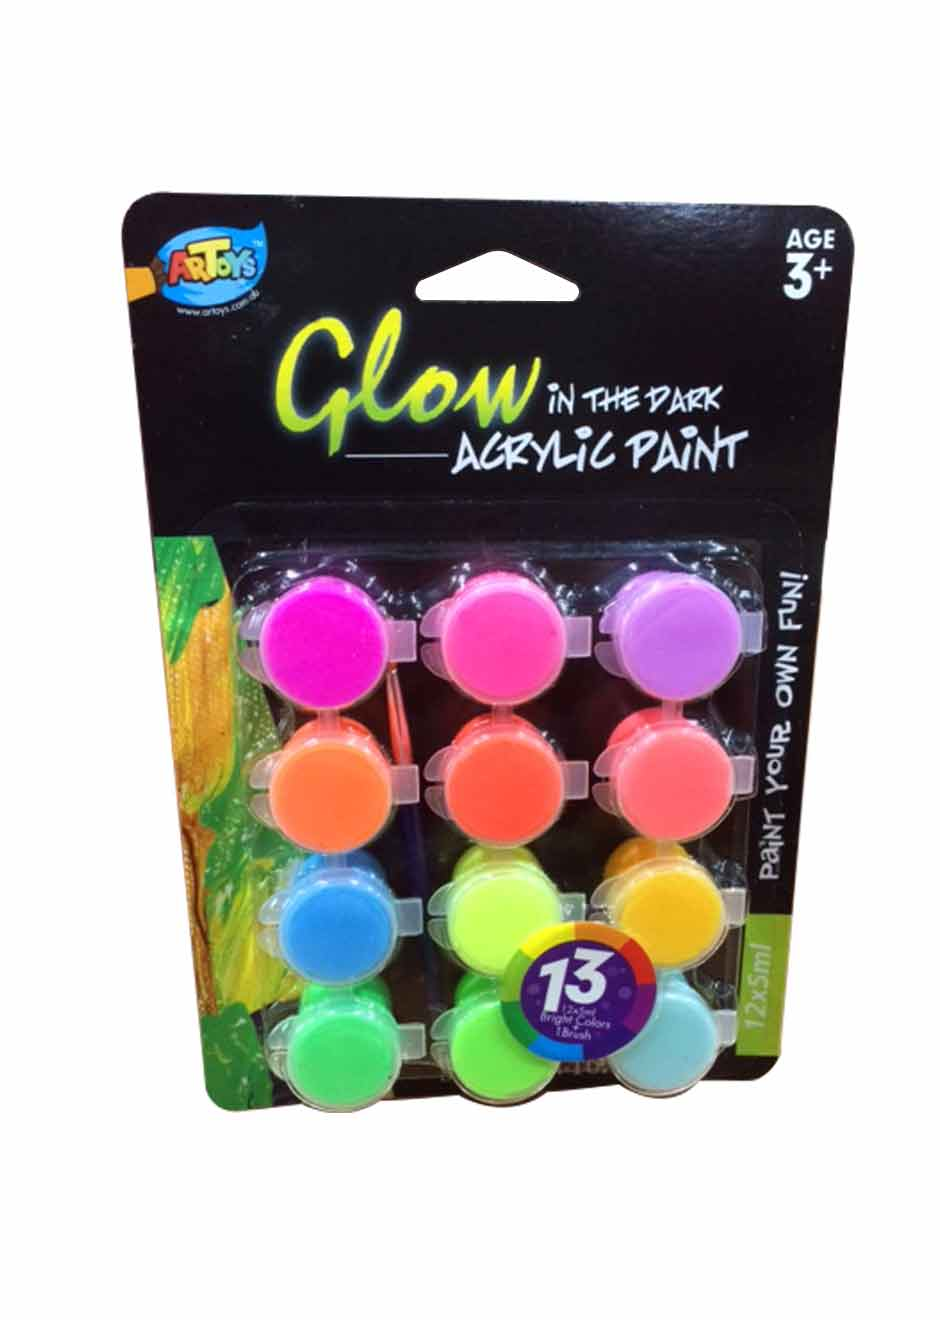 Artoys acrylic paint glow in the dark 12 colors toko - Glow in the dark paint colors ...